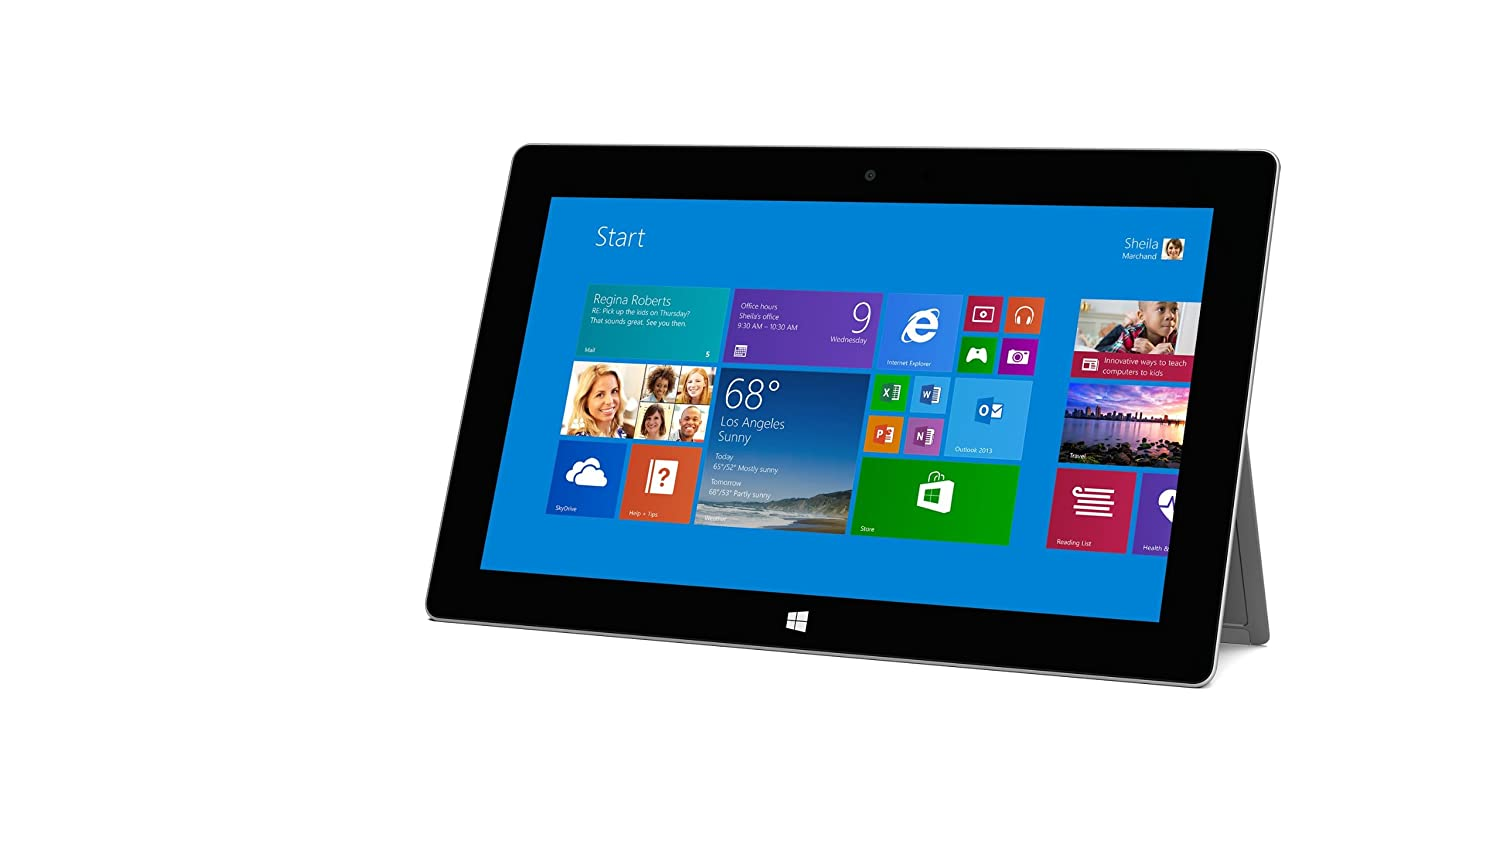 Microsoft 微软 Surface 2 32GB ¥2237